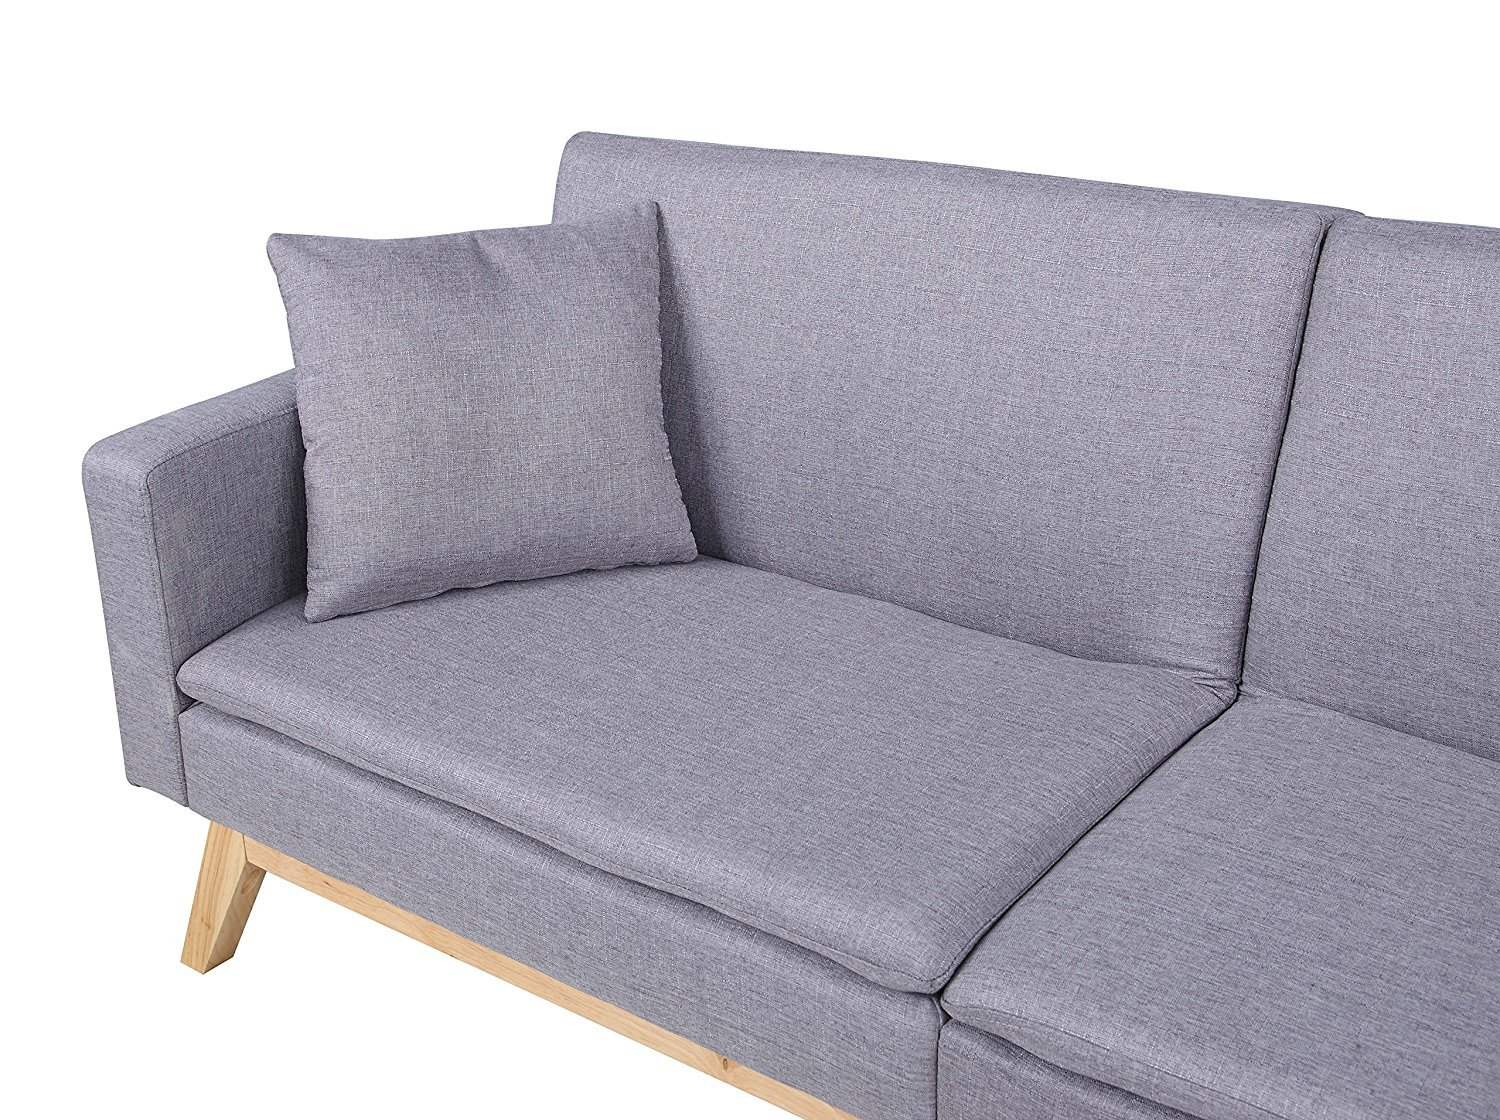 Cool Details About Light Grey Contemporary Split Back Futon Sofa With Low Profile Wooden Frame Legs Squirreltailoven Fun Painted Chair Ideas Images Squirreltailovenorg